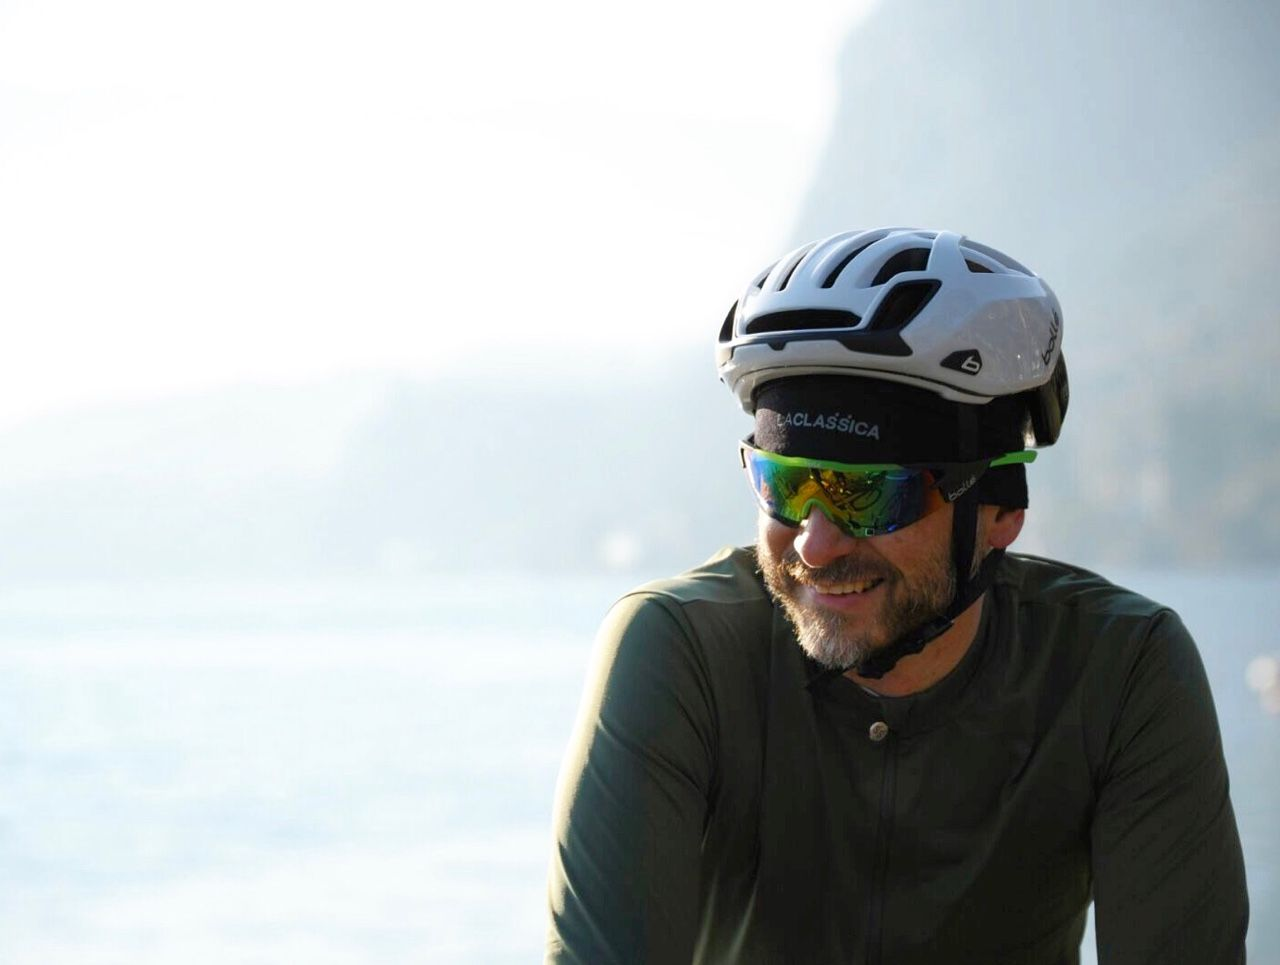 The pleasure of riding, the road, the freedom. Live your passion with LaClassica.